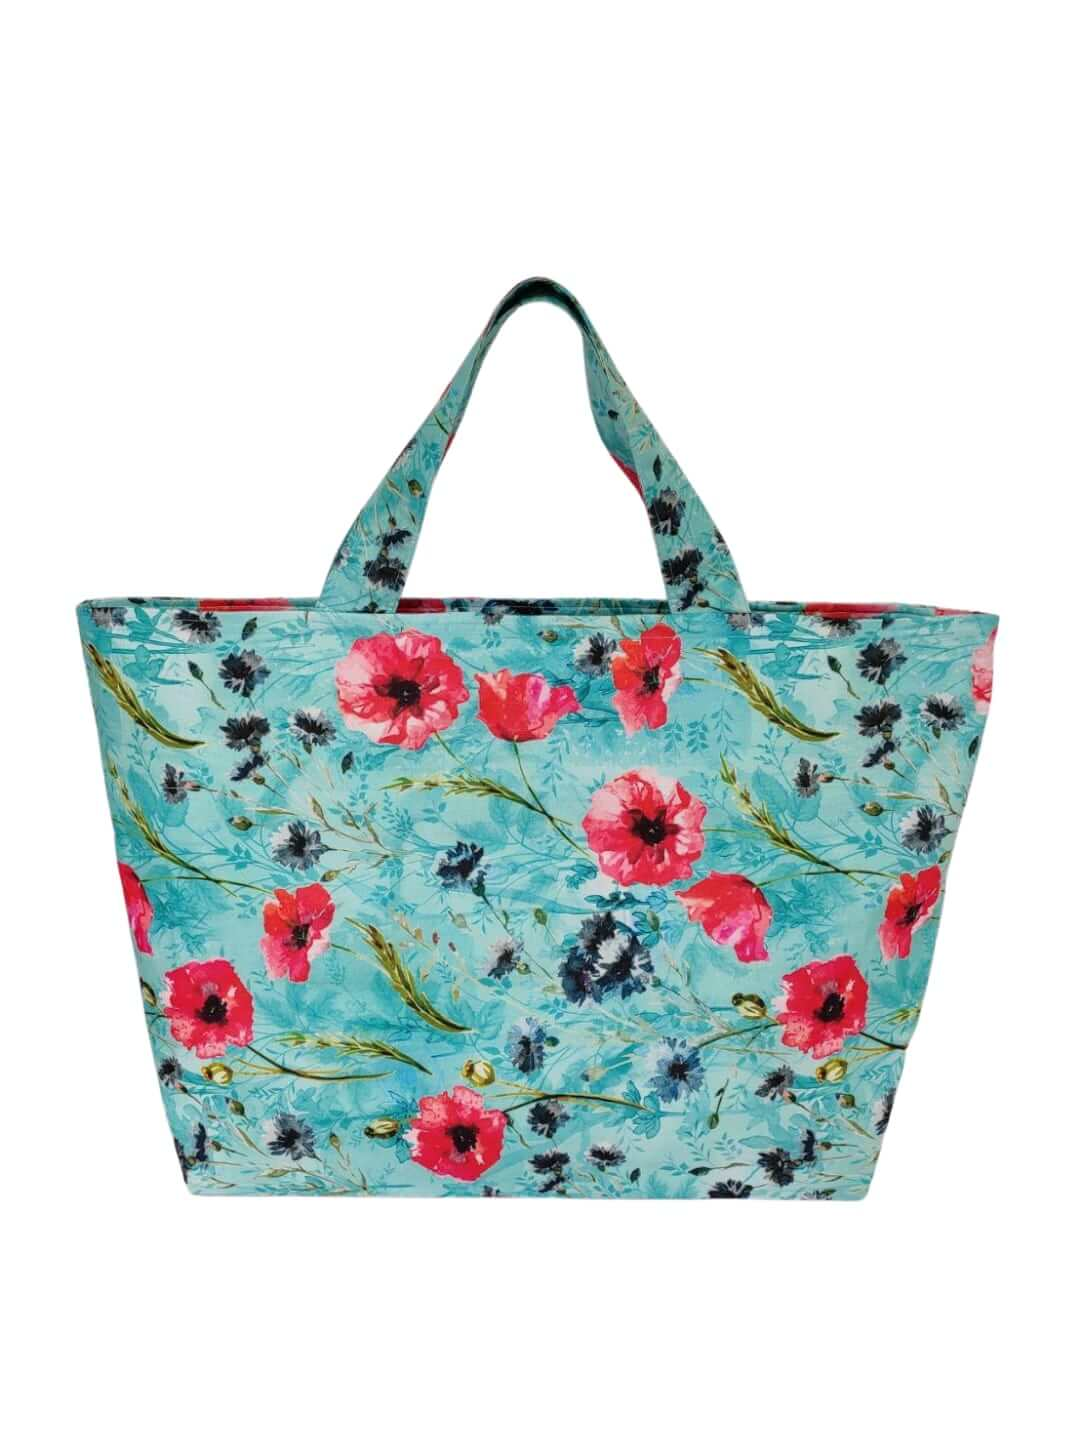 Blue Floral Printed Tote Bag